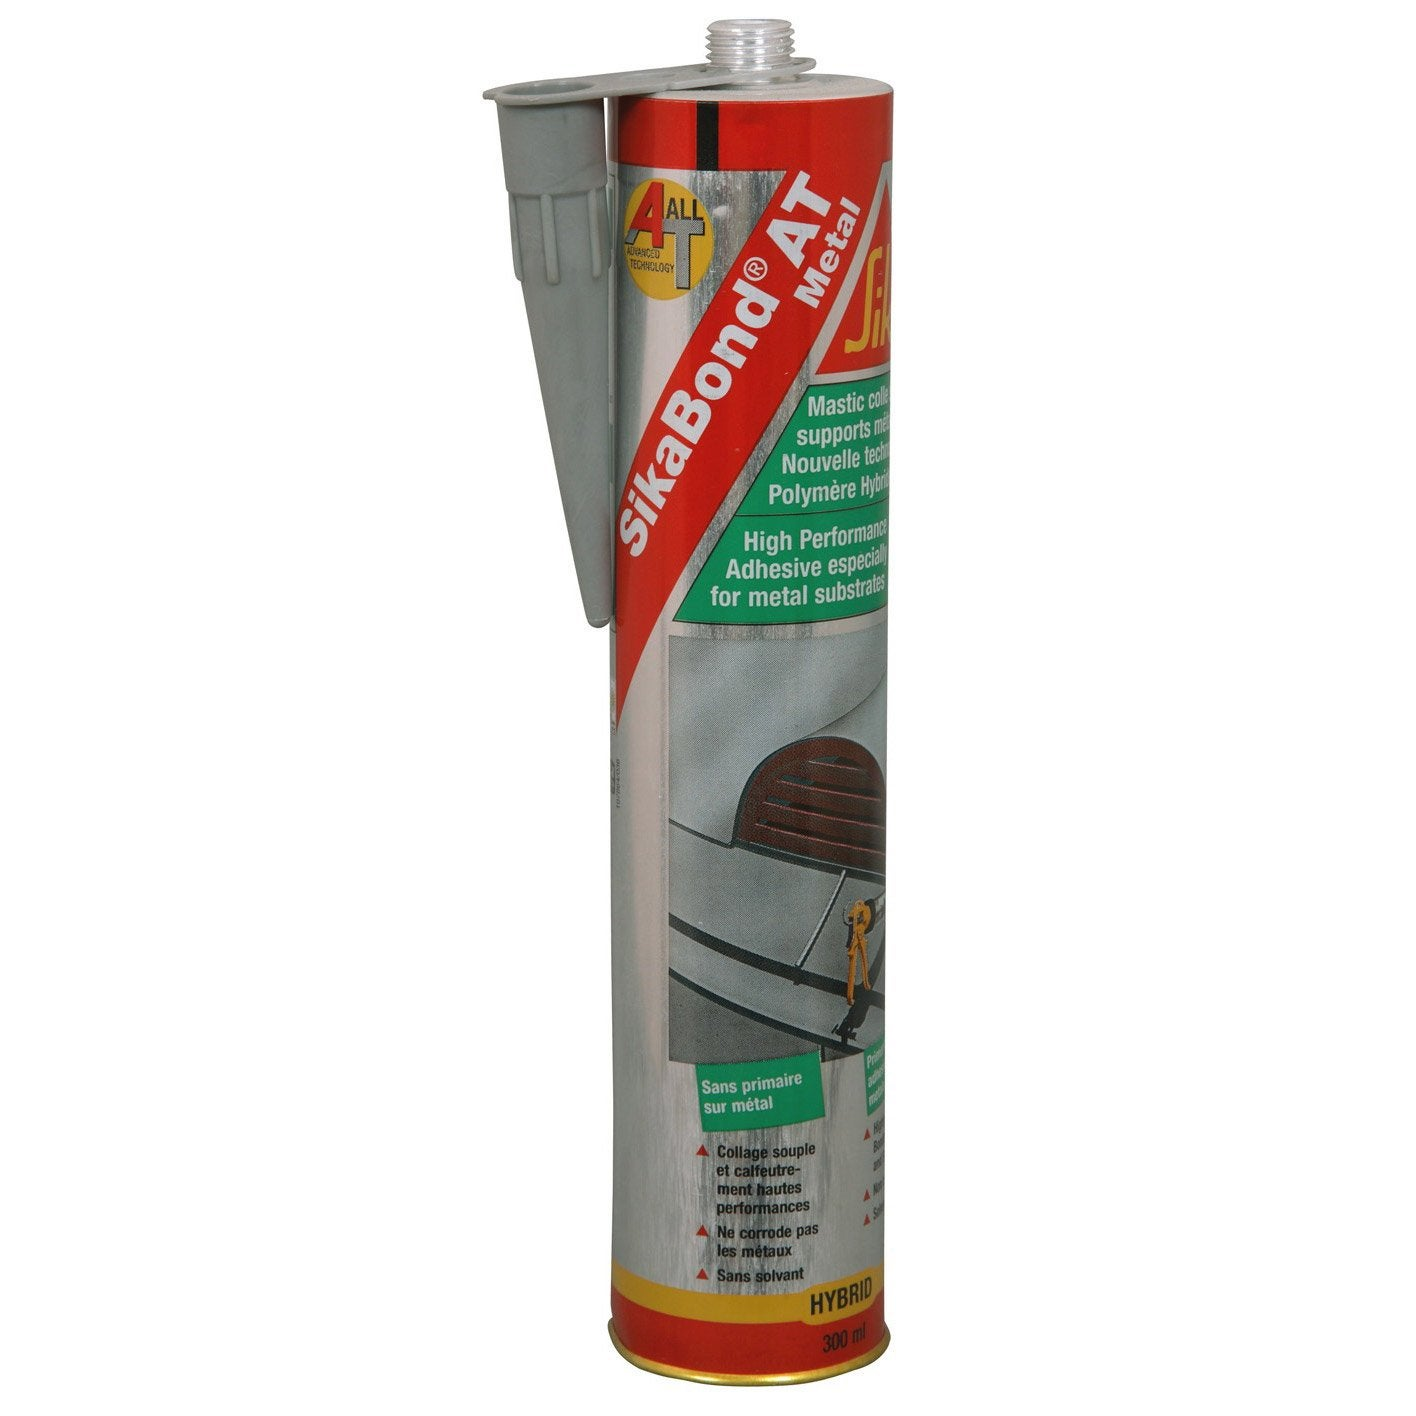 Colle sika sikabond at metal 300 ml gris leroy merlin - Colle plexiglas leroy merlin ...